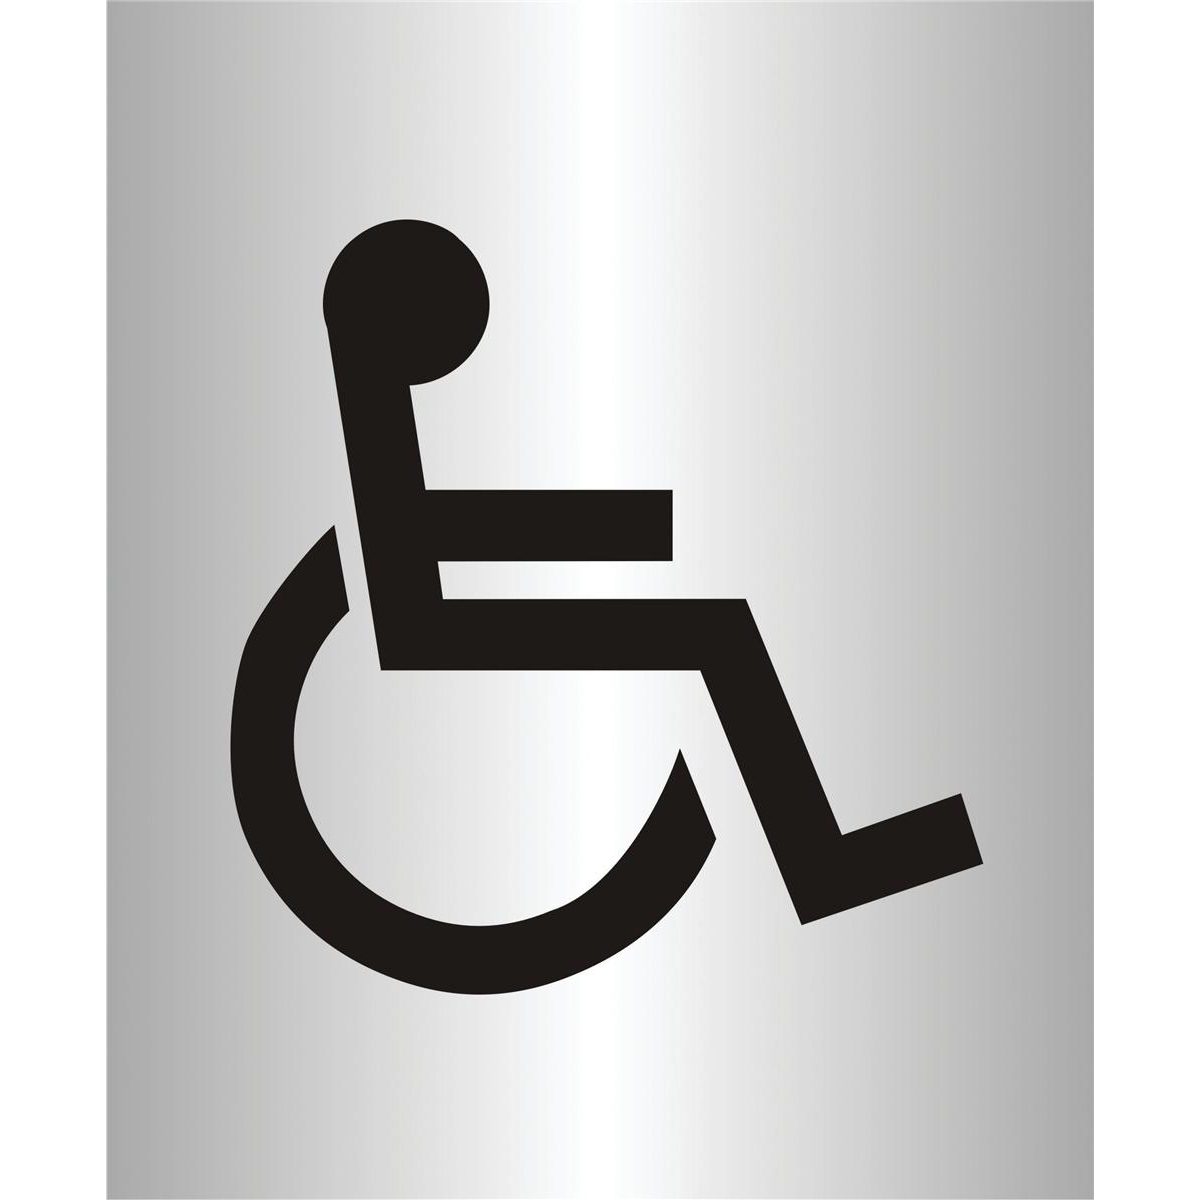 Stewart Superior Disabled Logo Sign Brushed Aluminium Acrylic  W115xH150mm Self-adhesive Ref bac103